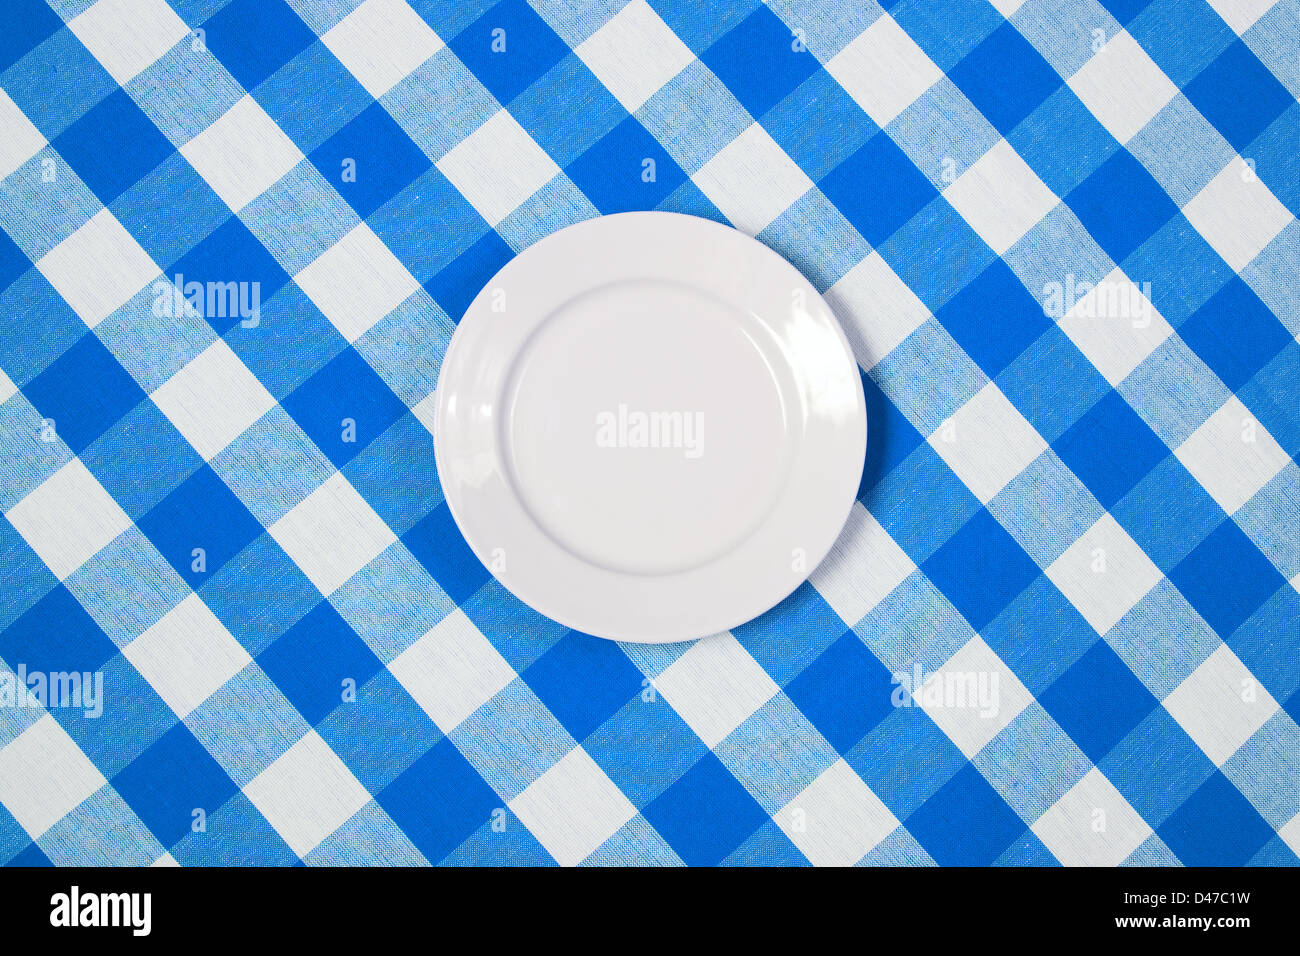 White Round Plate On Blue Checked Tablecloth   Stock Image